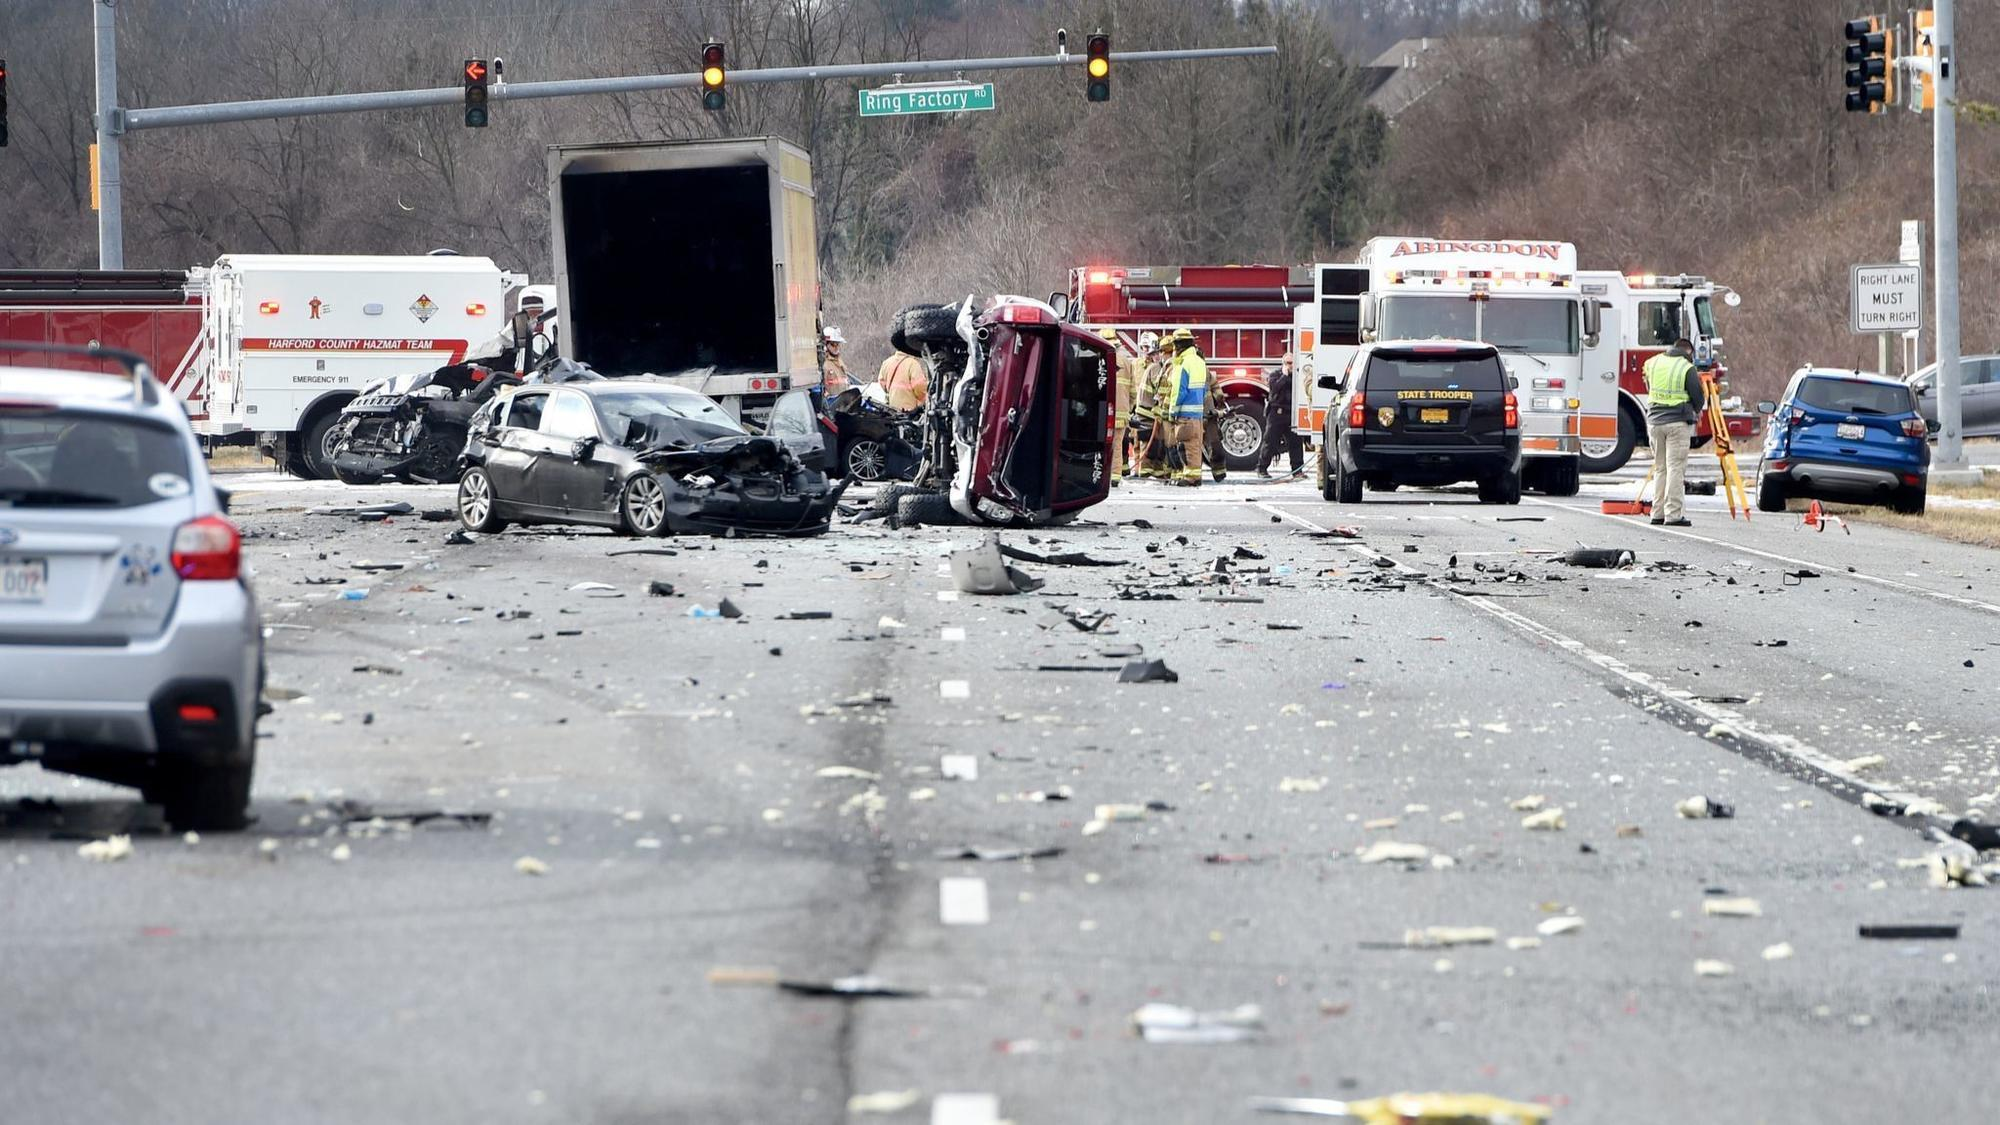 Maryland State Police still investigating cause of March 11 crash in